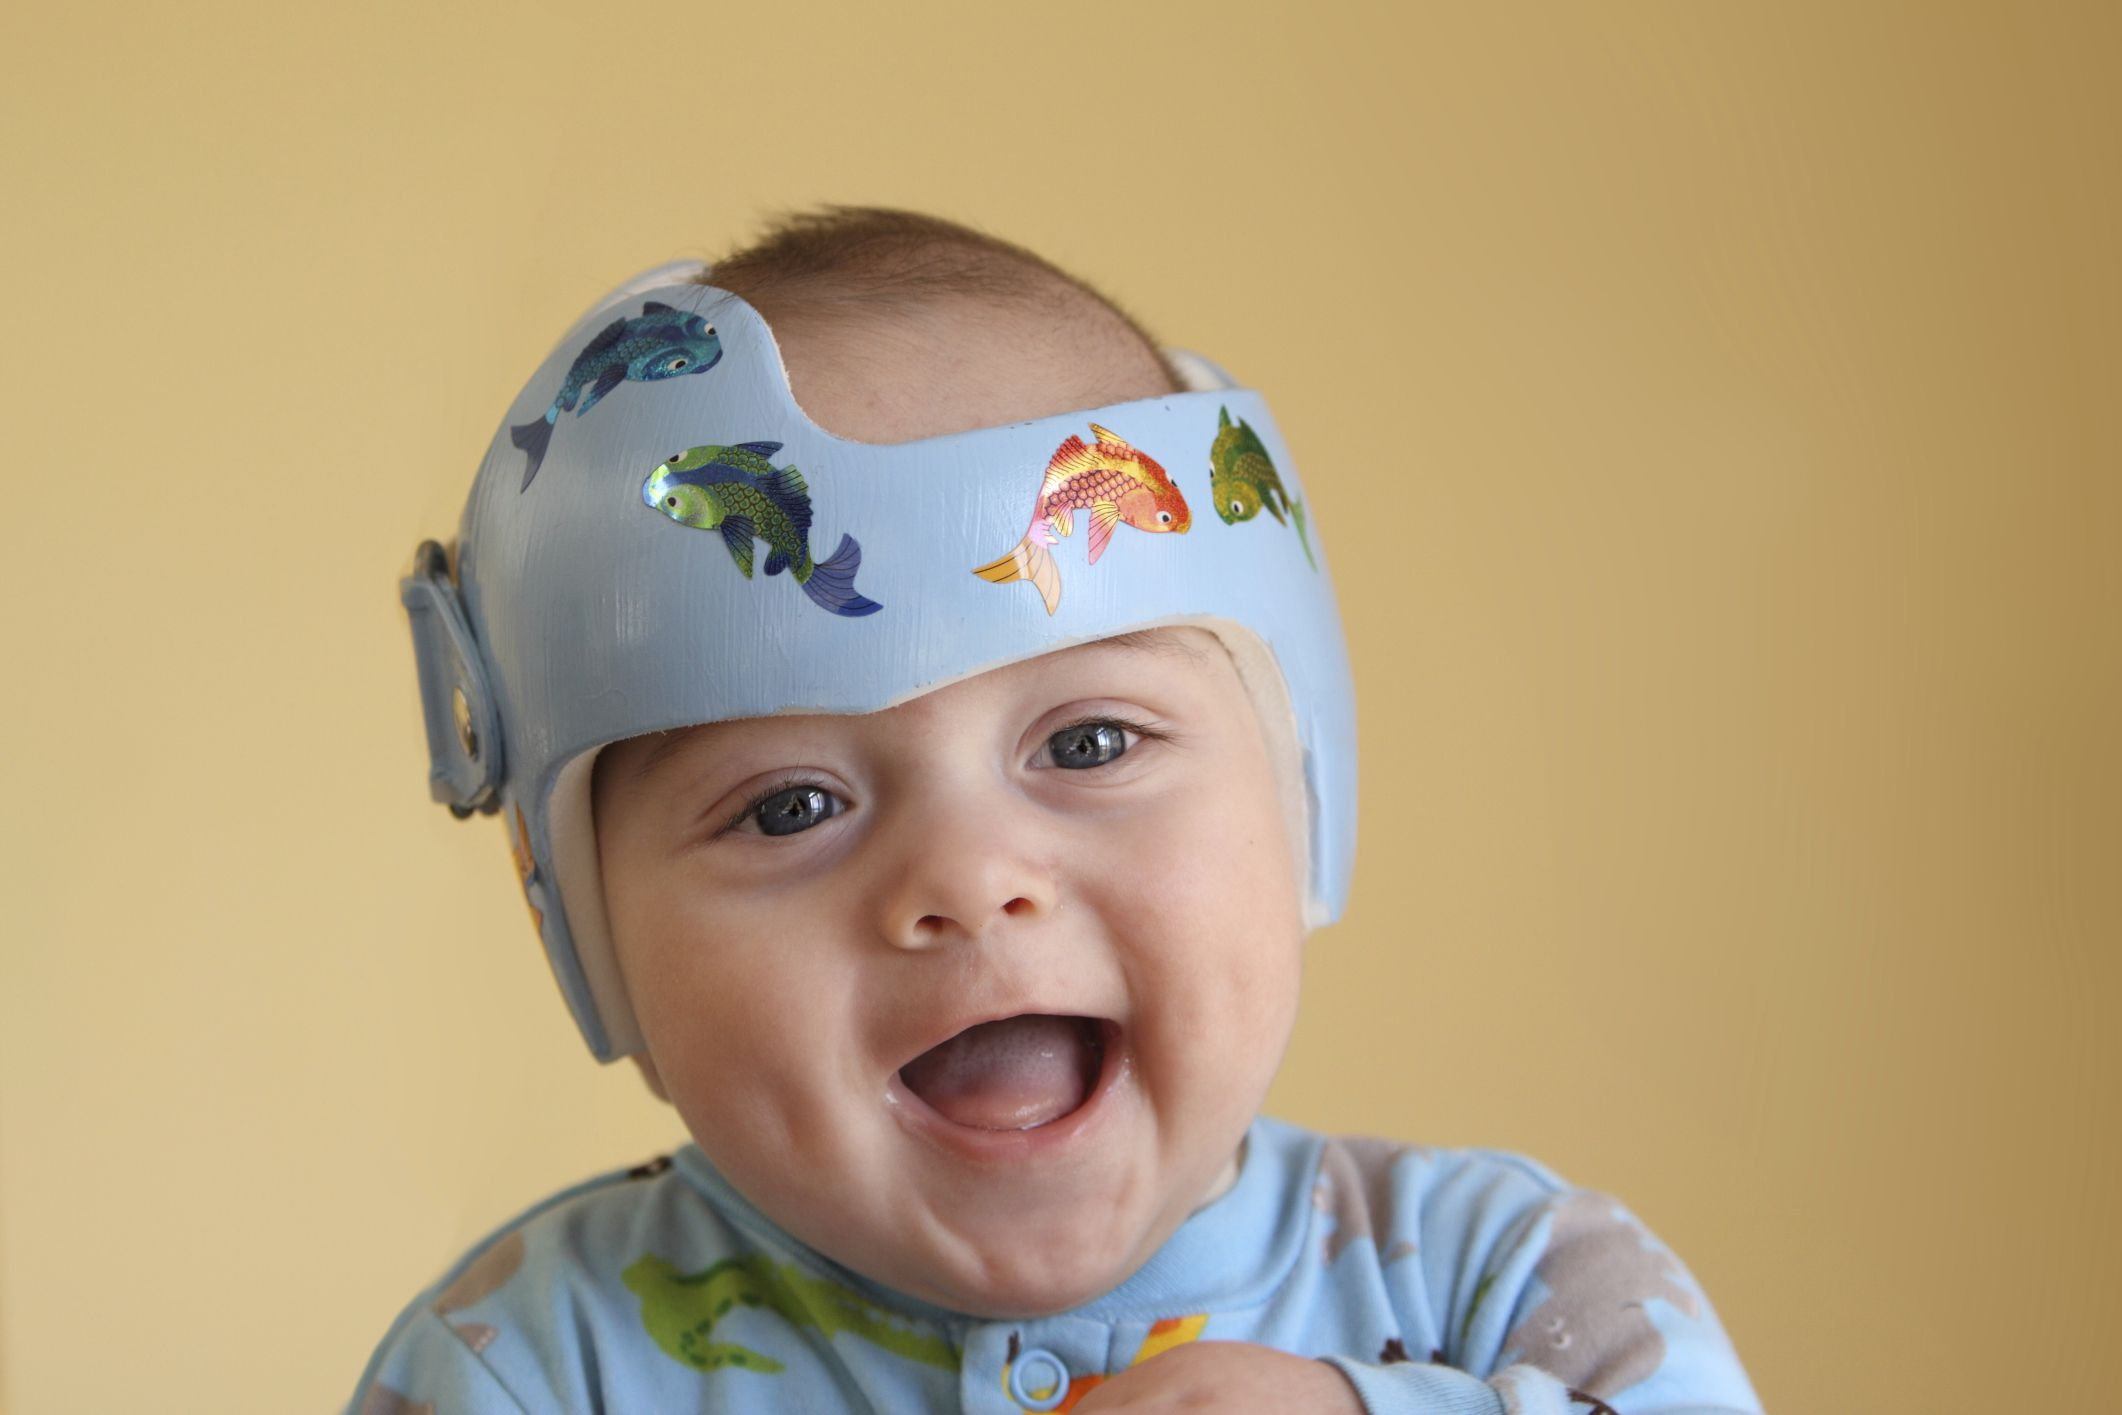 What To Know About Positional Plagiocephaly